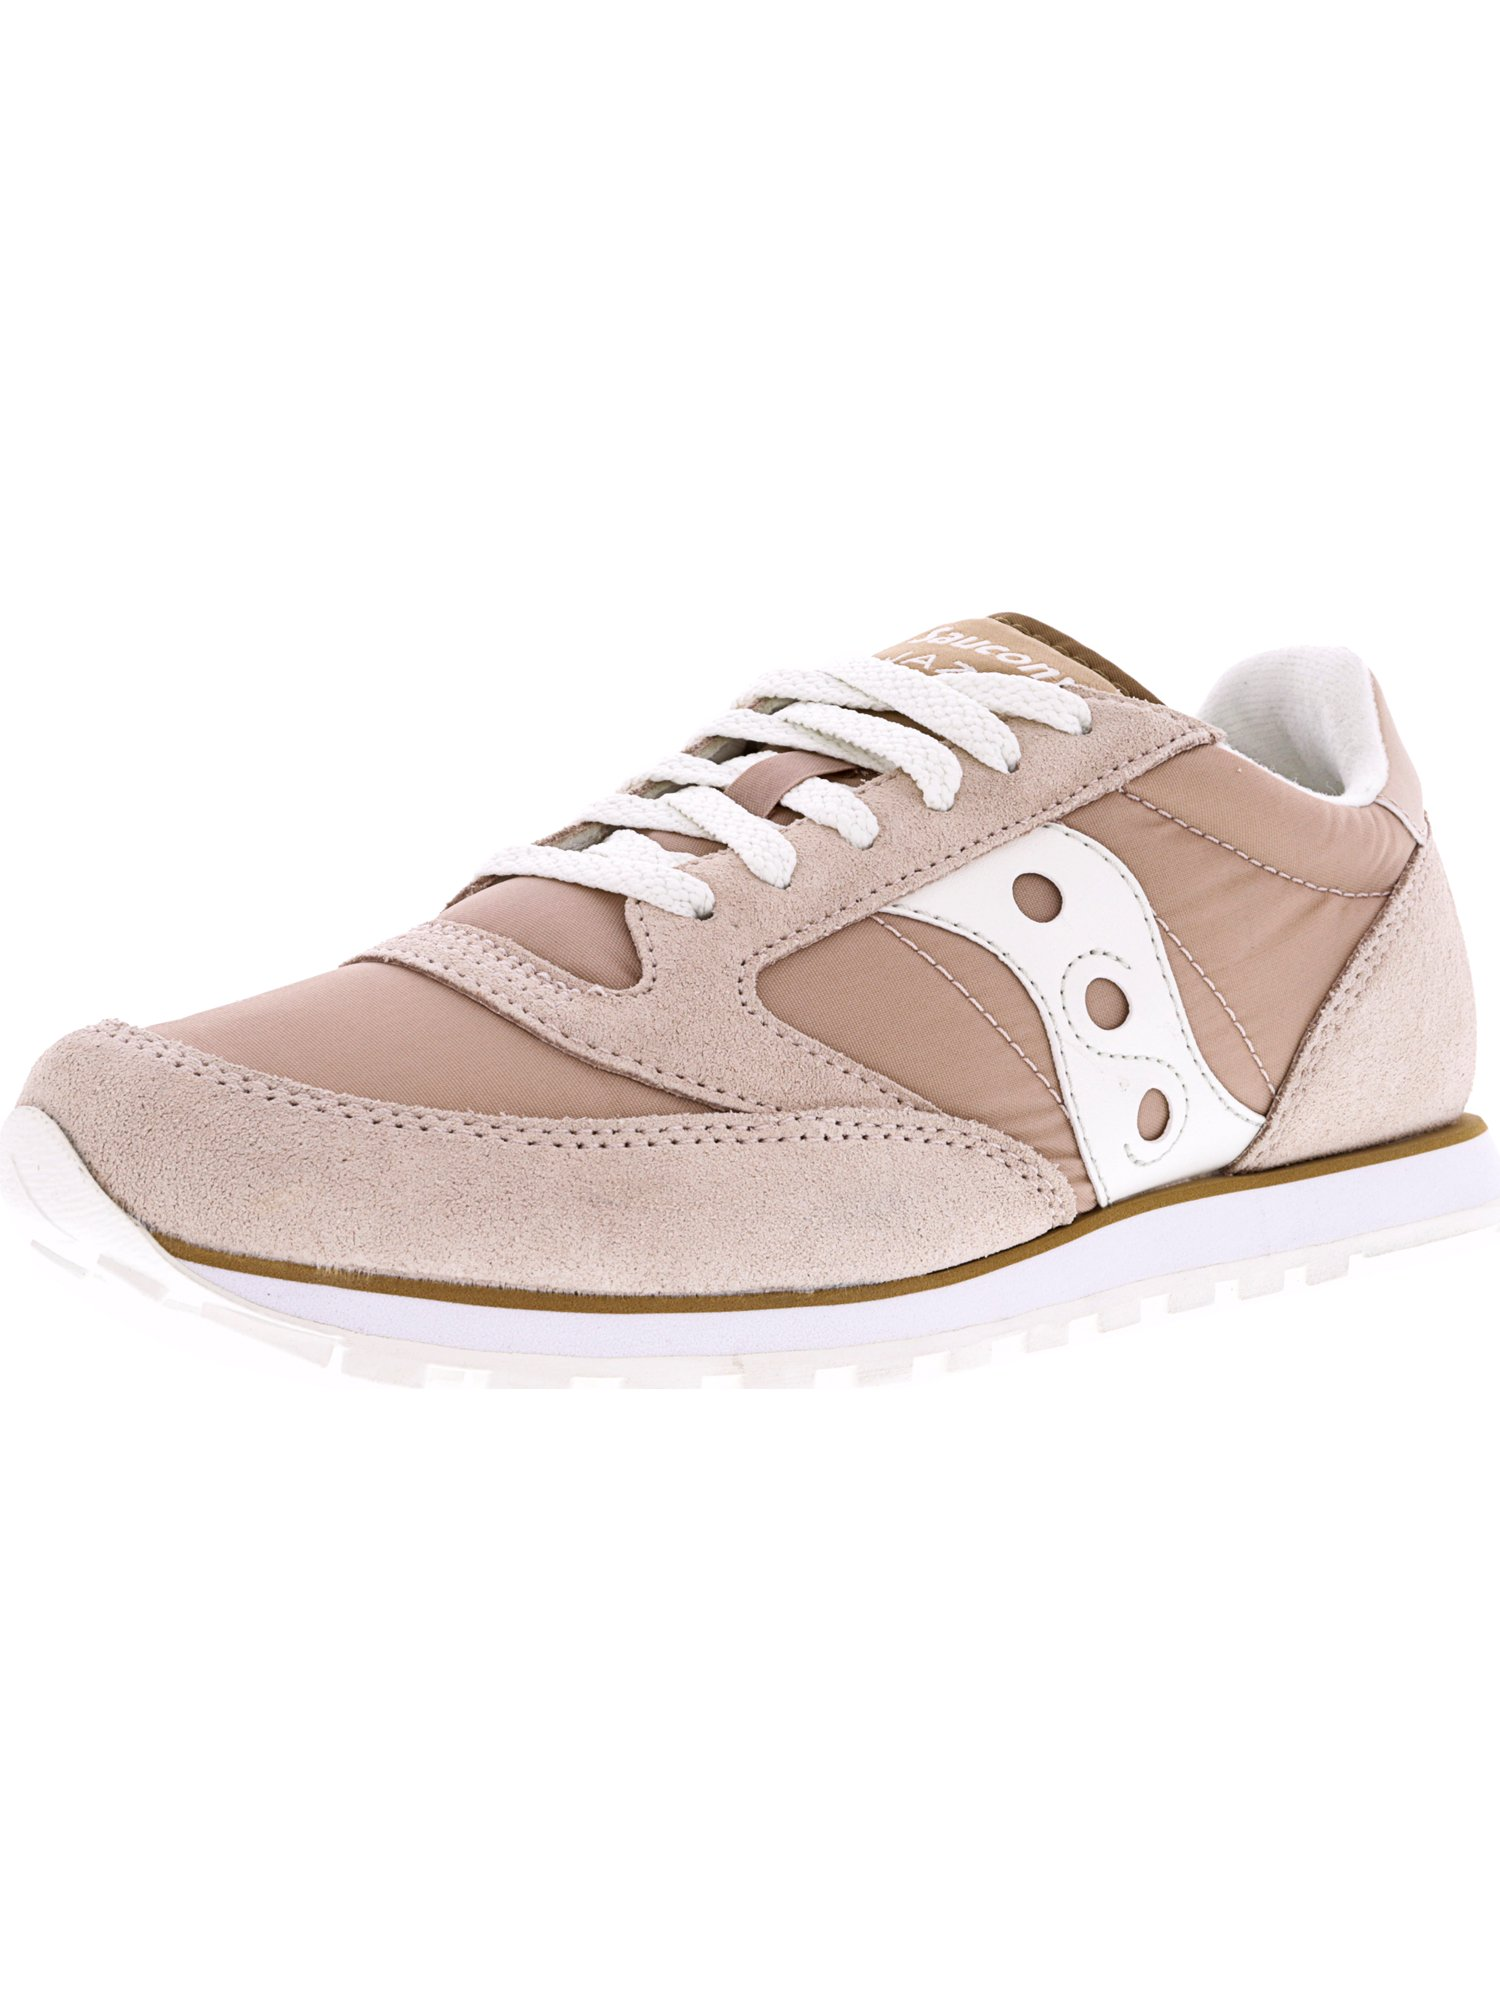 59c9e7cf Saucony Women's Jazz Low Pro Tan / White Ankle-High Fashion Sneaker - 10M